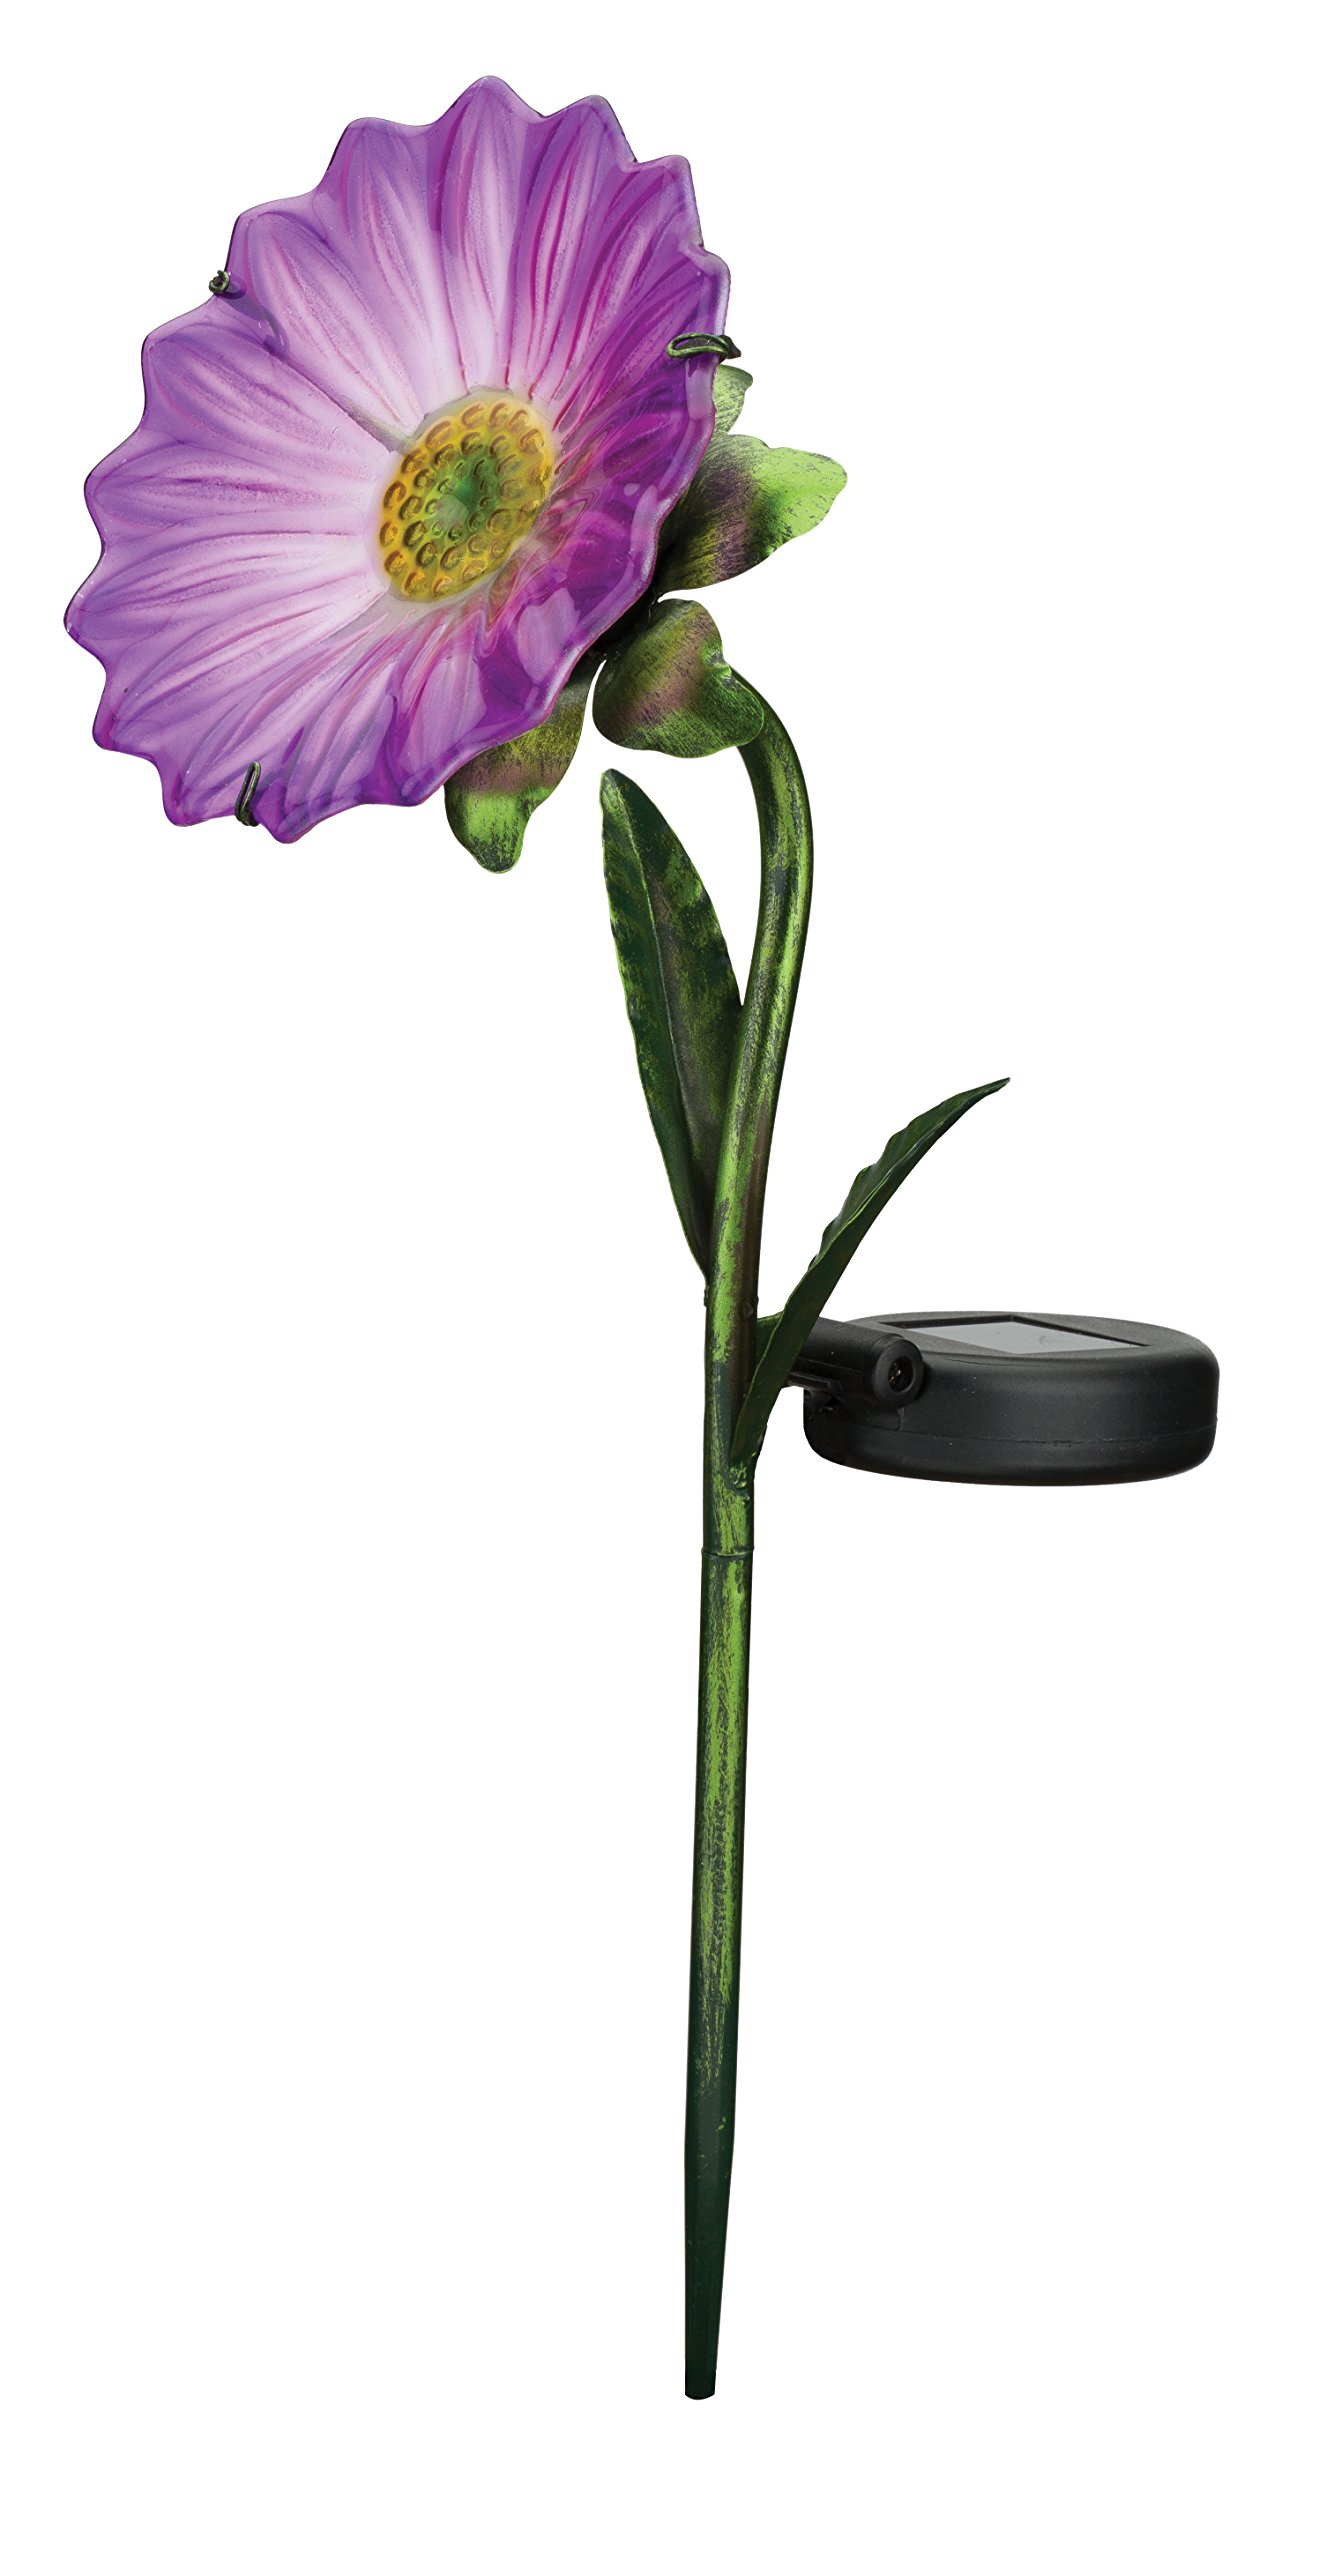 Regal Art & Gift 11636 Mini Daisy Stake Solar Light Garden Decor, Purple